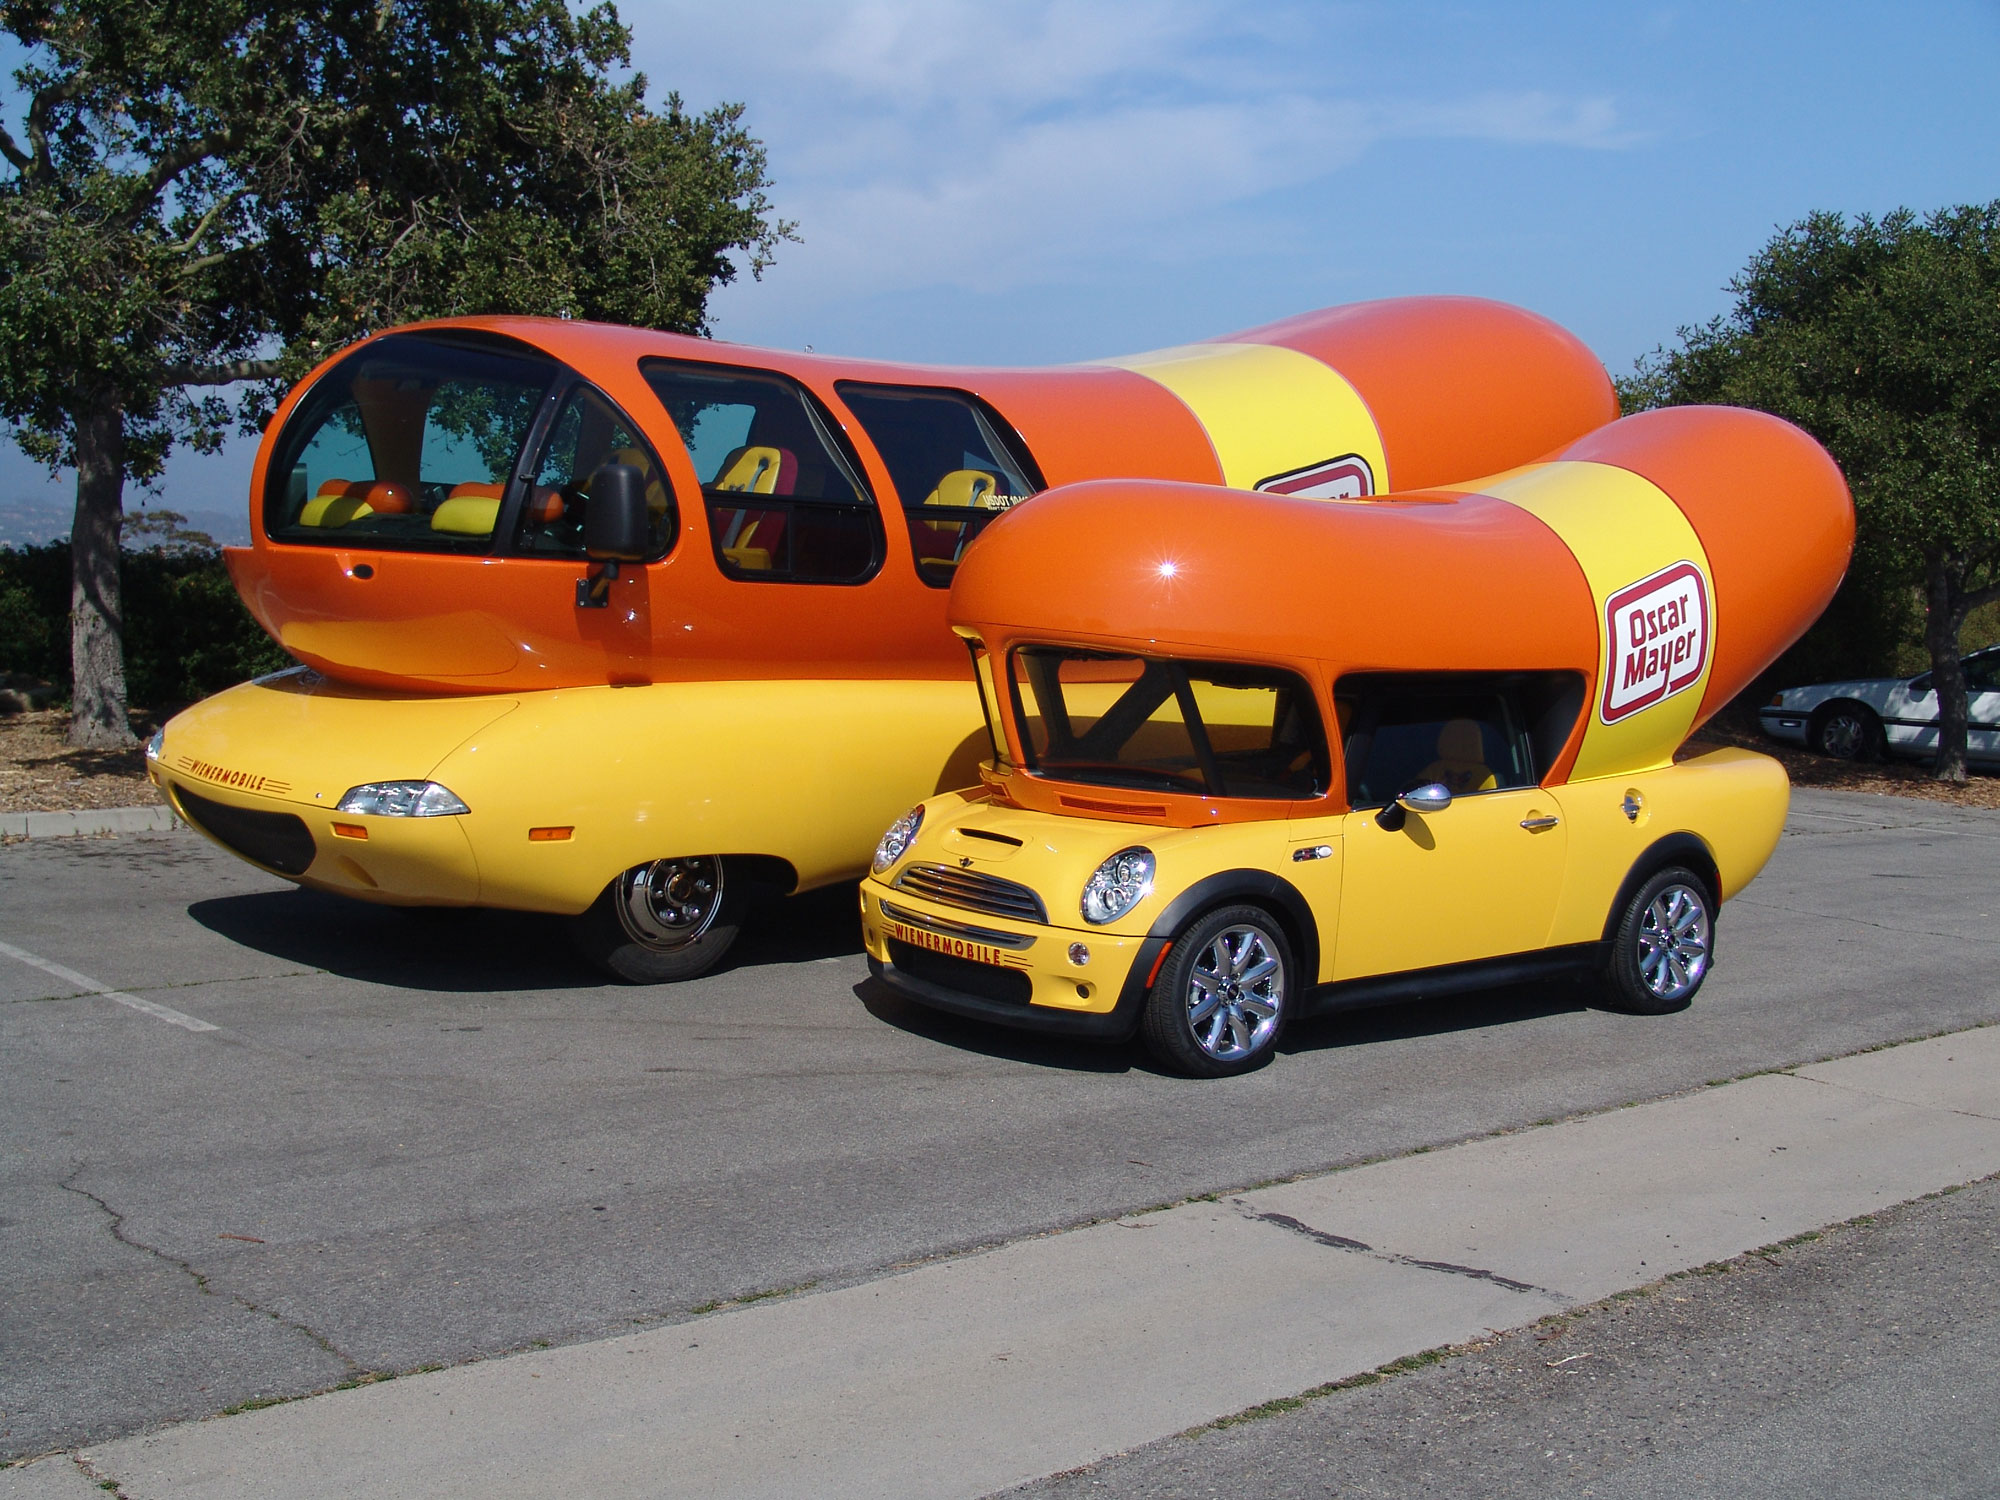 An Encounter With The Wienermobile additionally Catchy Hot Dog Slogans And Great Taglines besides Oscar Meyer Unveils New Fleet Of Weinermobiles likewise Ketchup With The Oscar Mayer Wienermobile This Week 6585843 as well Justin Bieber Luis Fonsi Despacito Remix. on oscar mayer wiener